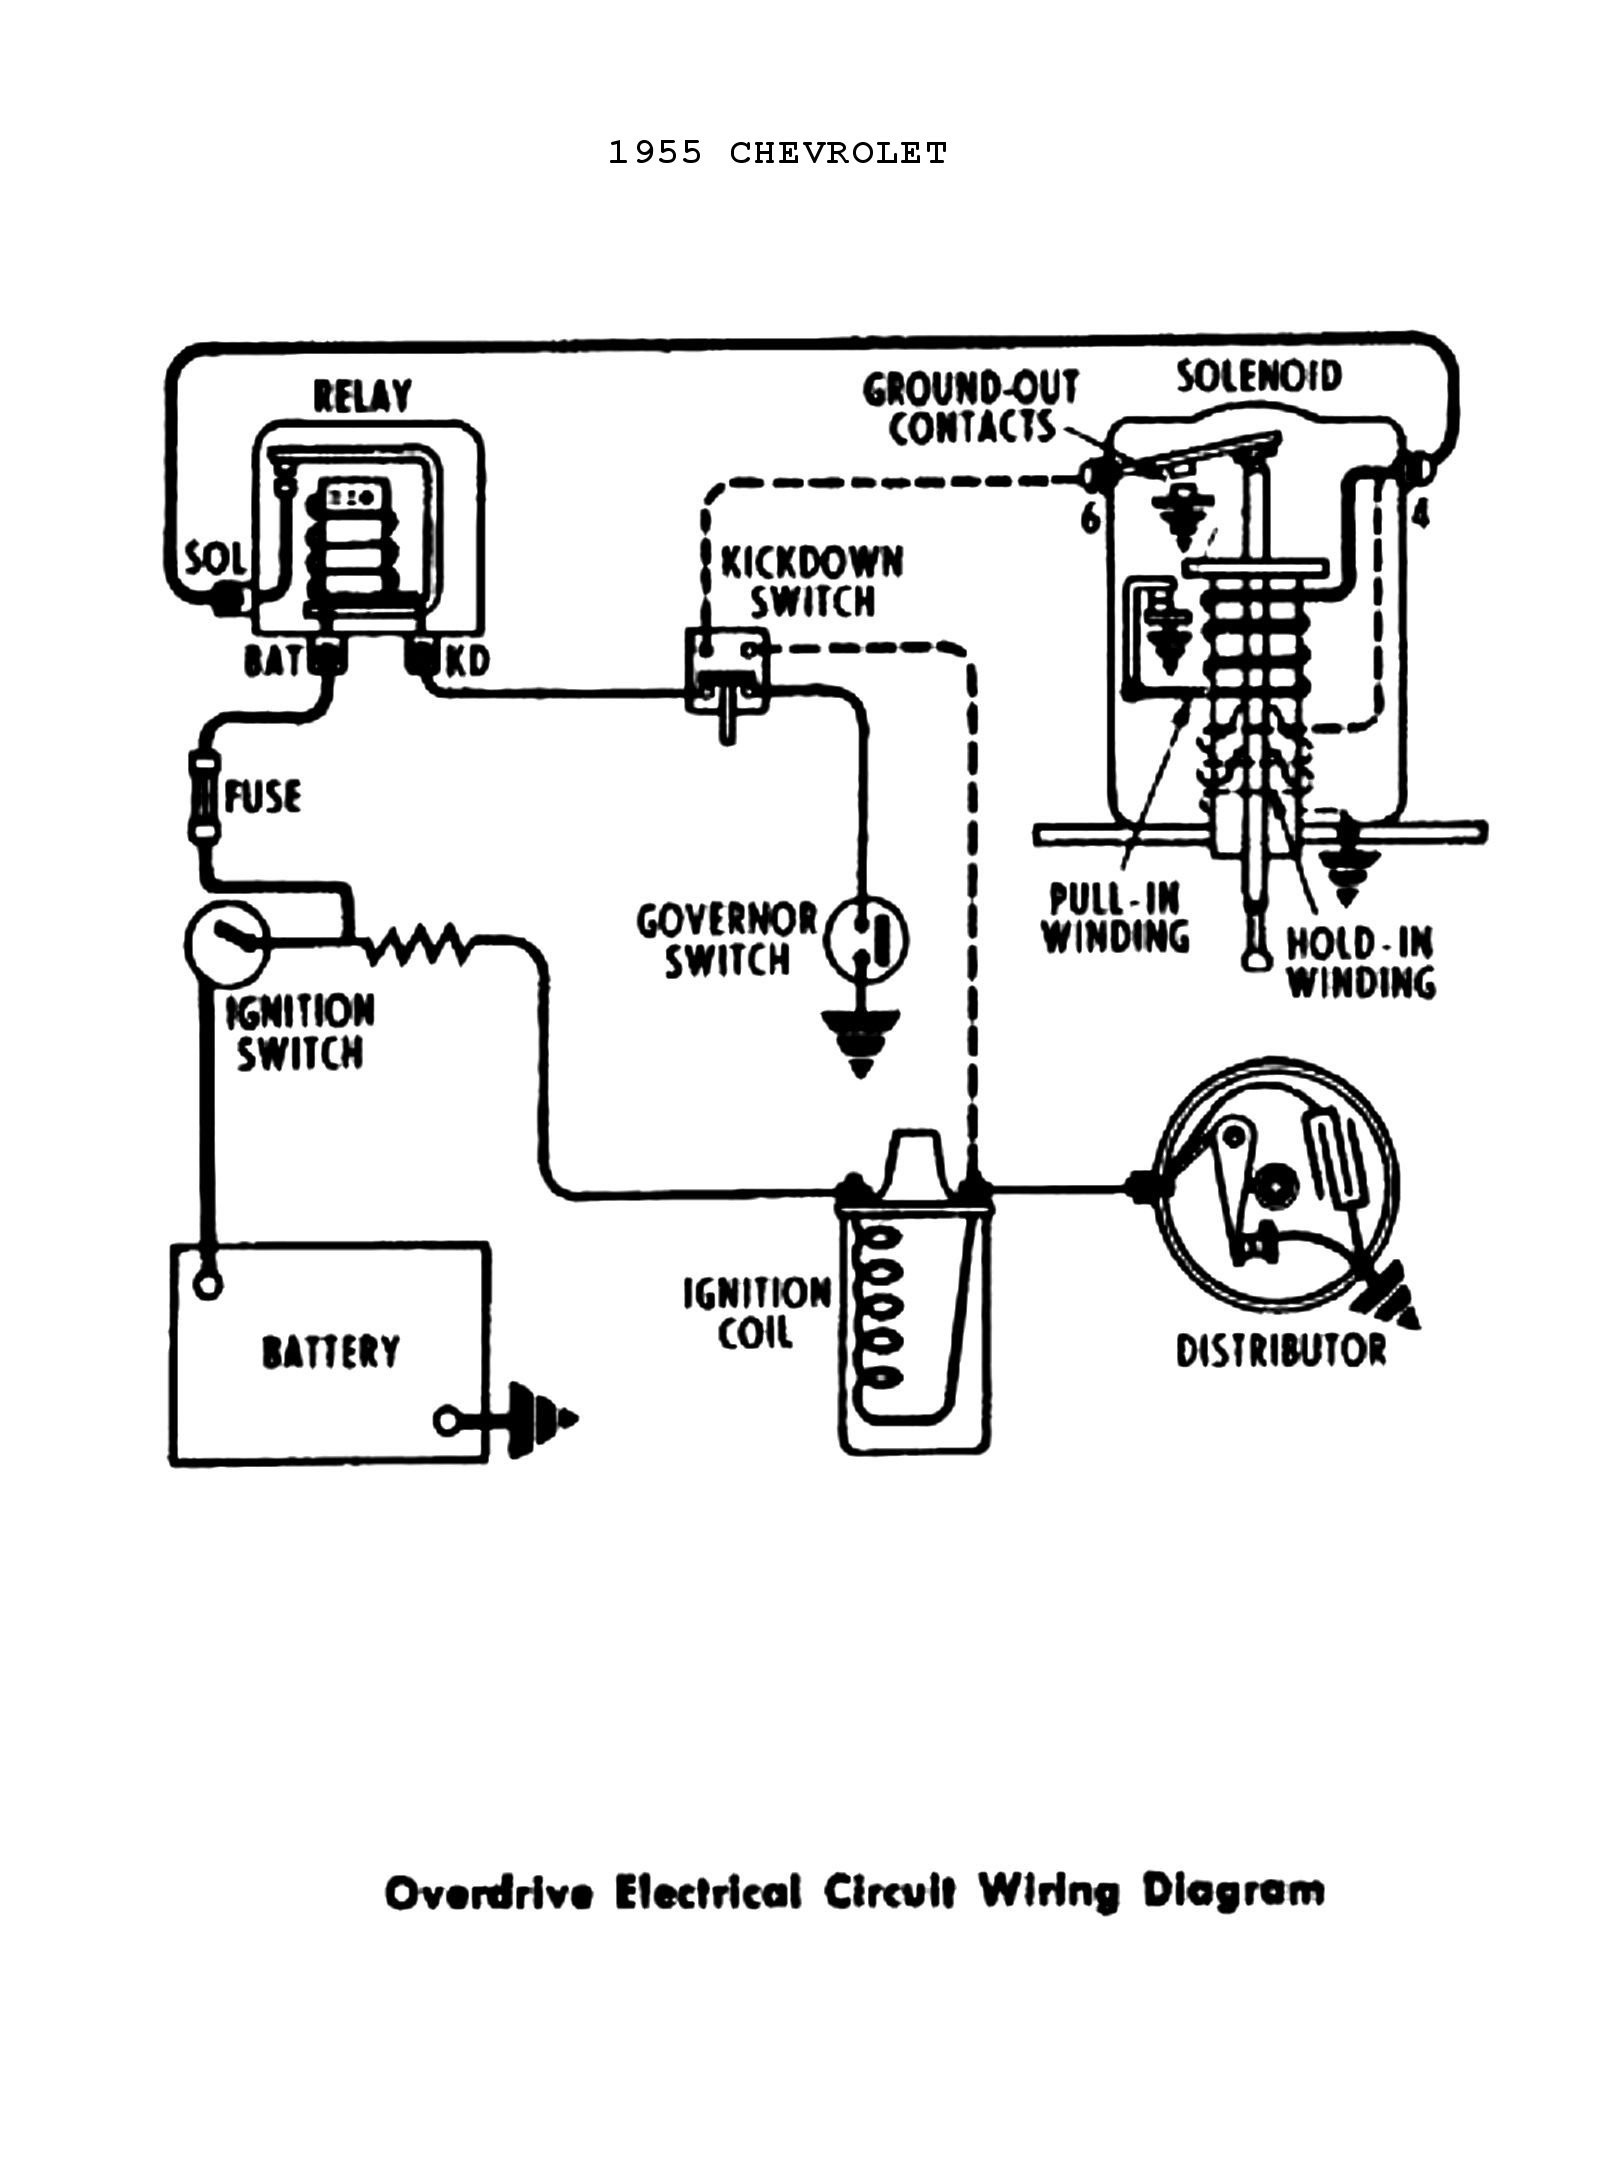 Chevy Silverado Wiring Diagram Chevy Truck Wiring Diagram Moreover 1955 Chevy Ignition Switch Of Chevy Silverado Wiring Diagram